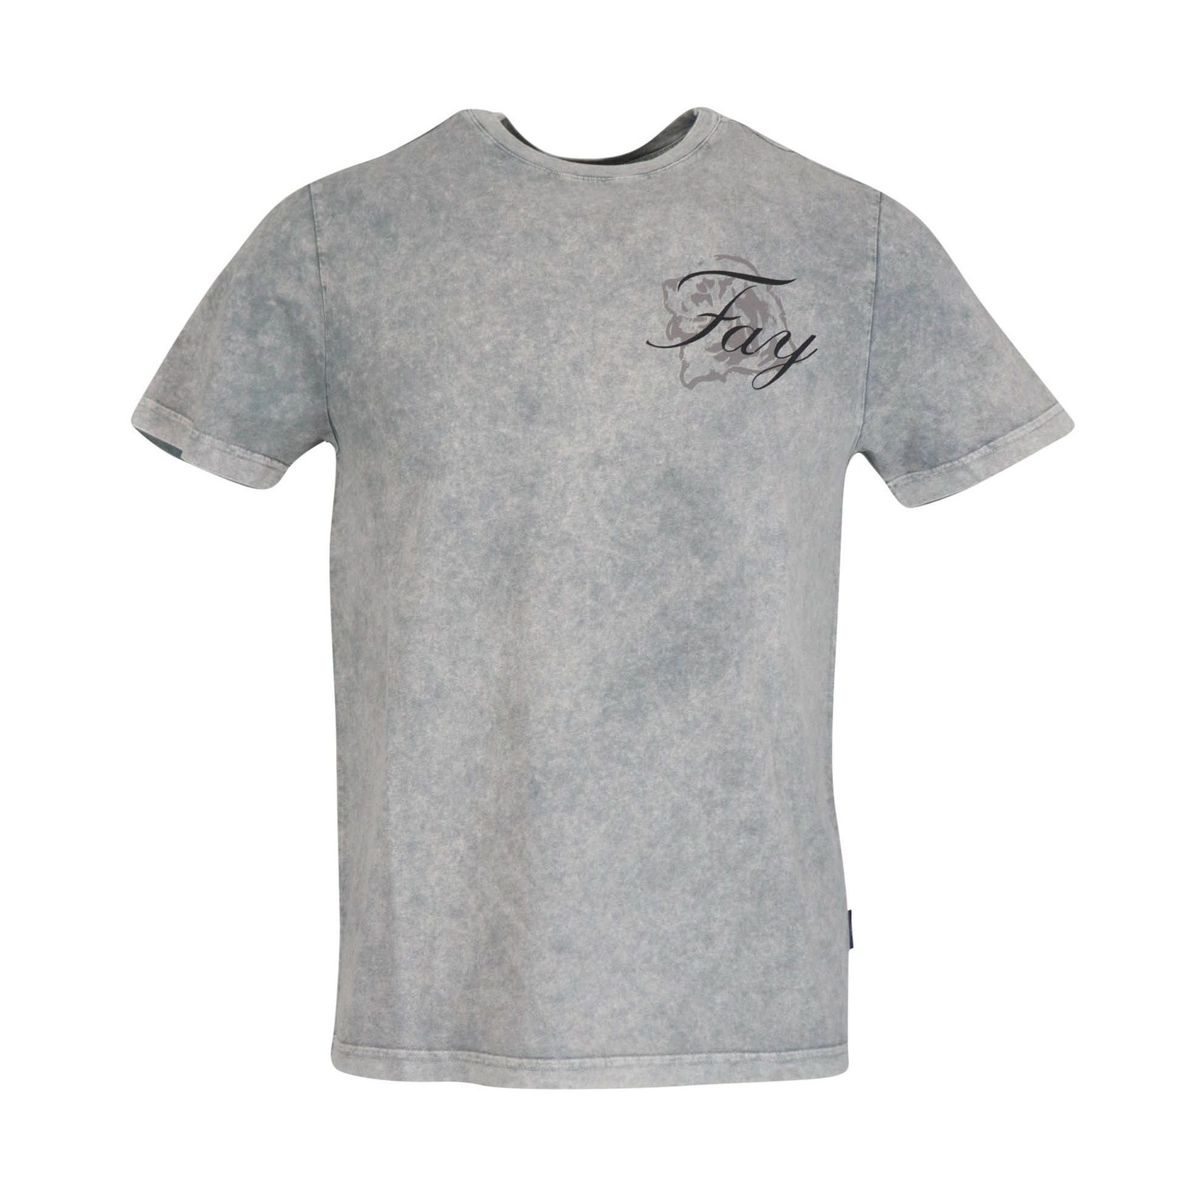 Garment dyed cotton short sleeve t-shirt Light grey Fay